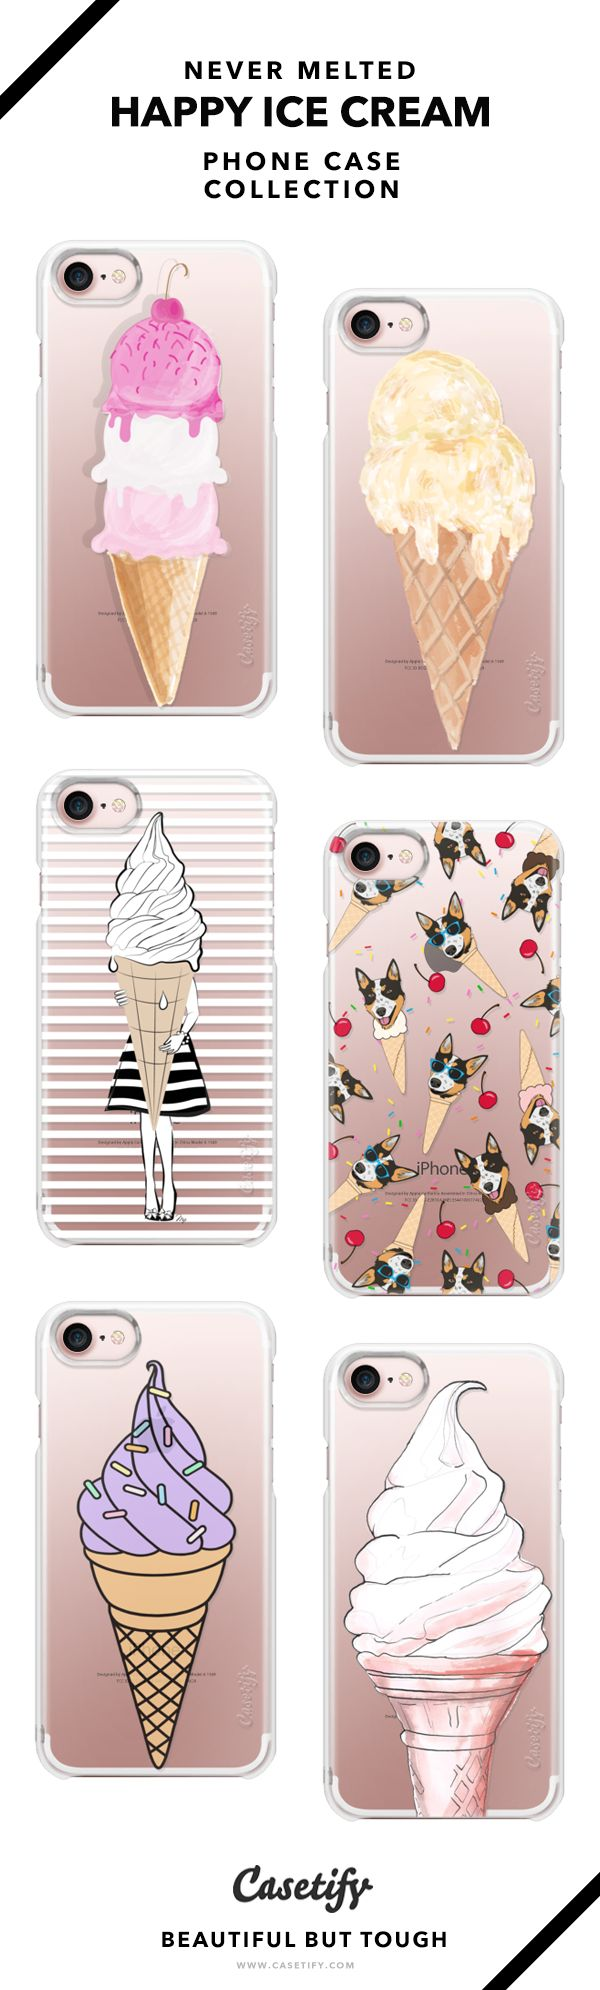 Lick it til it melts! | Never melted Ice Cream Phone Case Collection | iPhone 6/6s/7/7+ AND MORE! Shop them here ☝️☝️☝️ BEAUTIFUL BUT TOUGH ✨ - Ice Cream, Dessert, Summer, Sweet, Food, Love, Cute, Girl